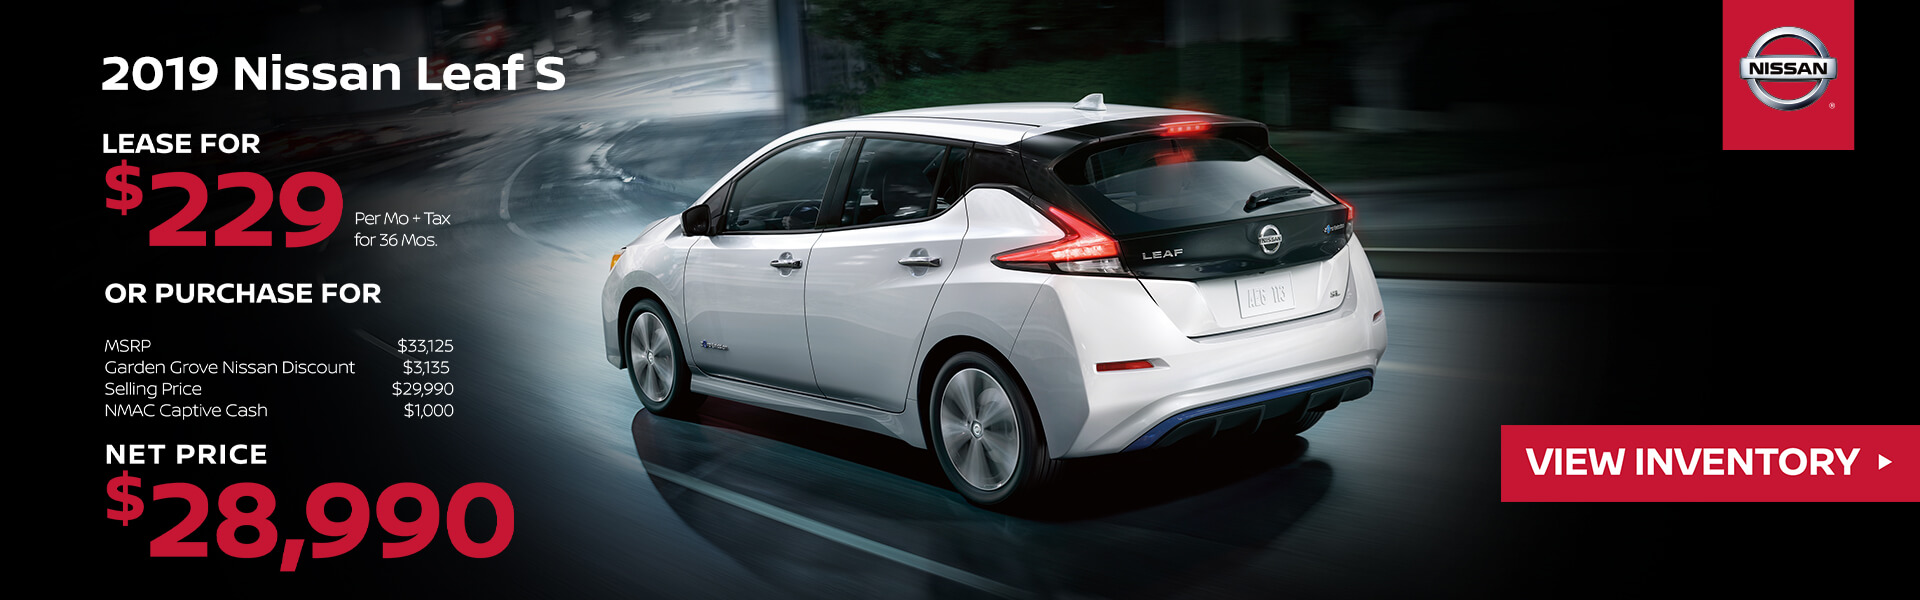 2019 Nissan Leaf Lease for $229